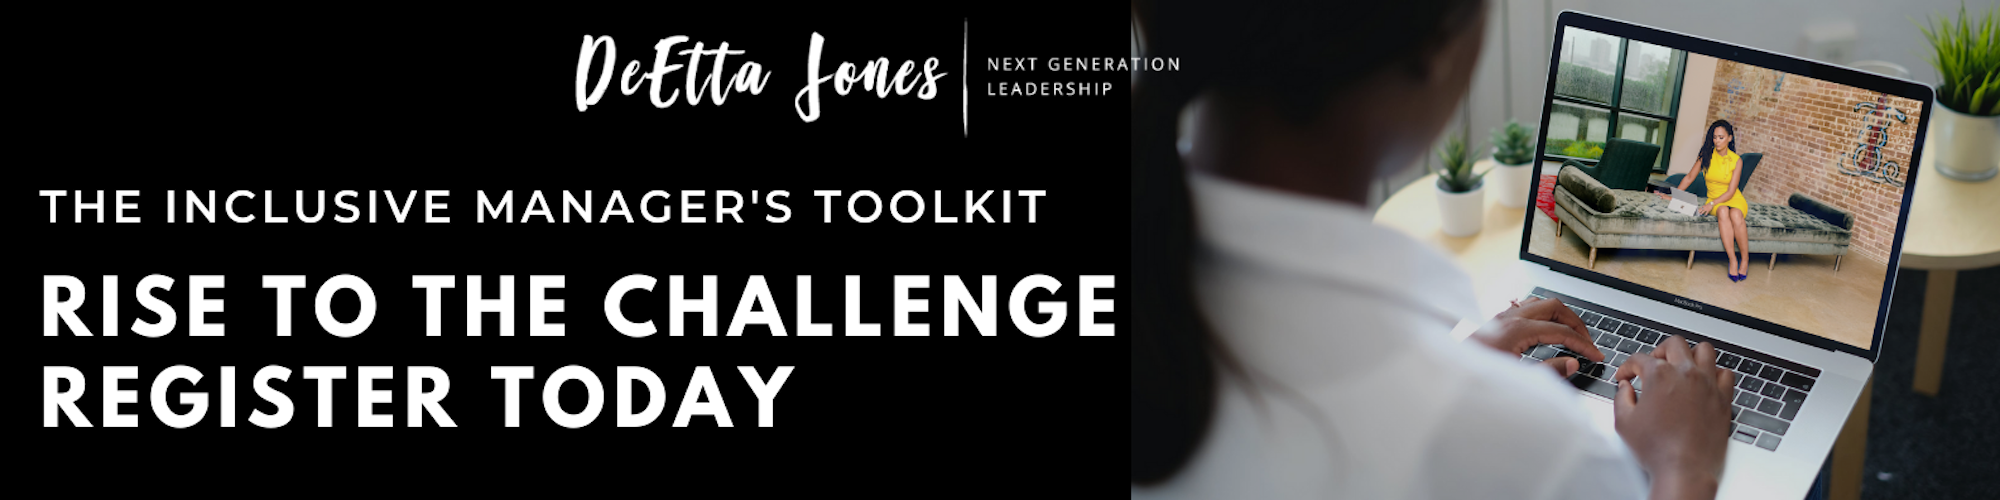 The Inclusive Manager's Toolkit - Rise to the Challenge: Register Today